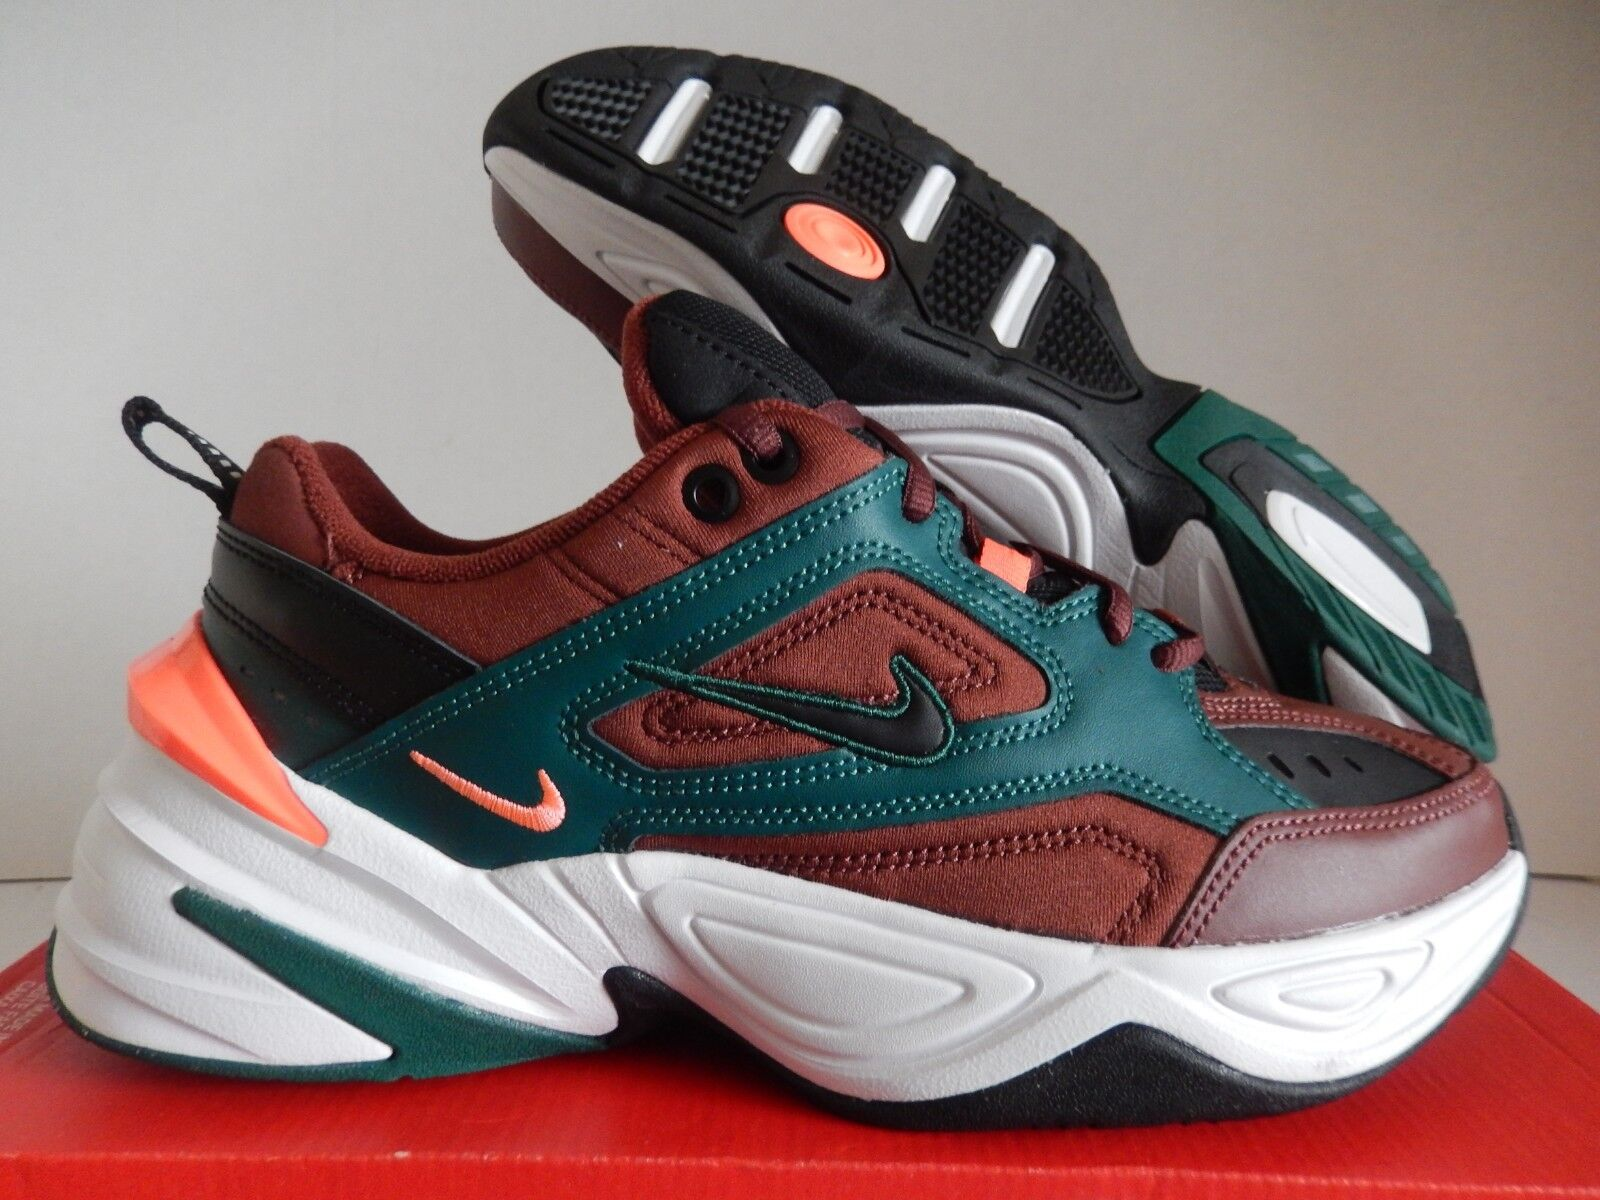 MENS NIKE M2K TEKNO MONARCH RUNNING PUEBLO BROWN-BLACK SZ 7 [AV4789-200]